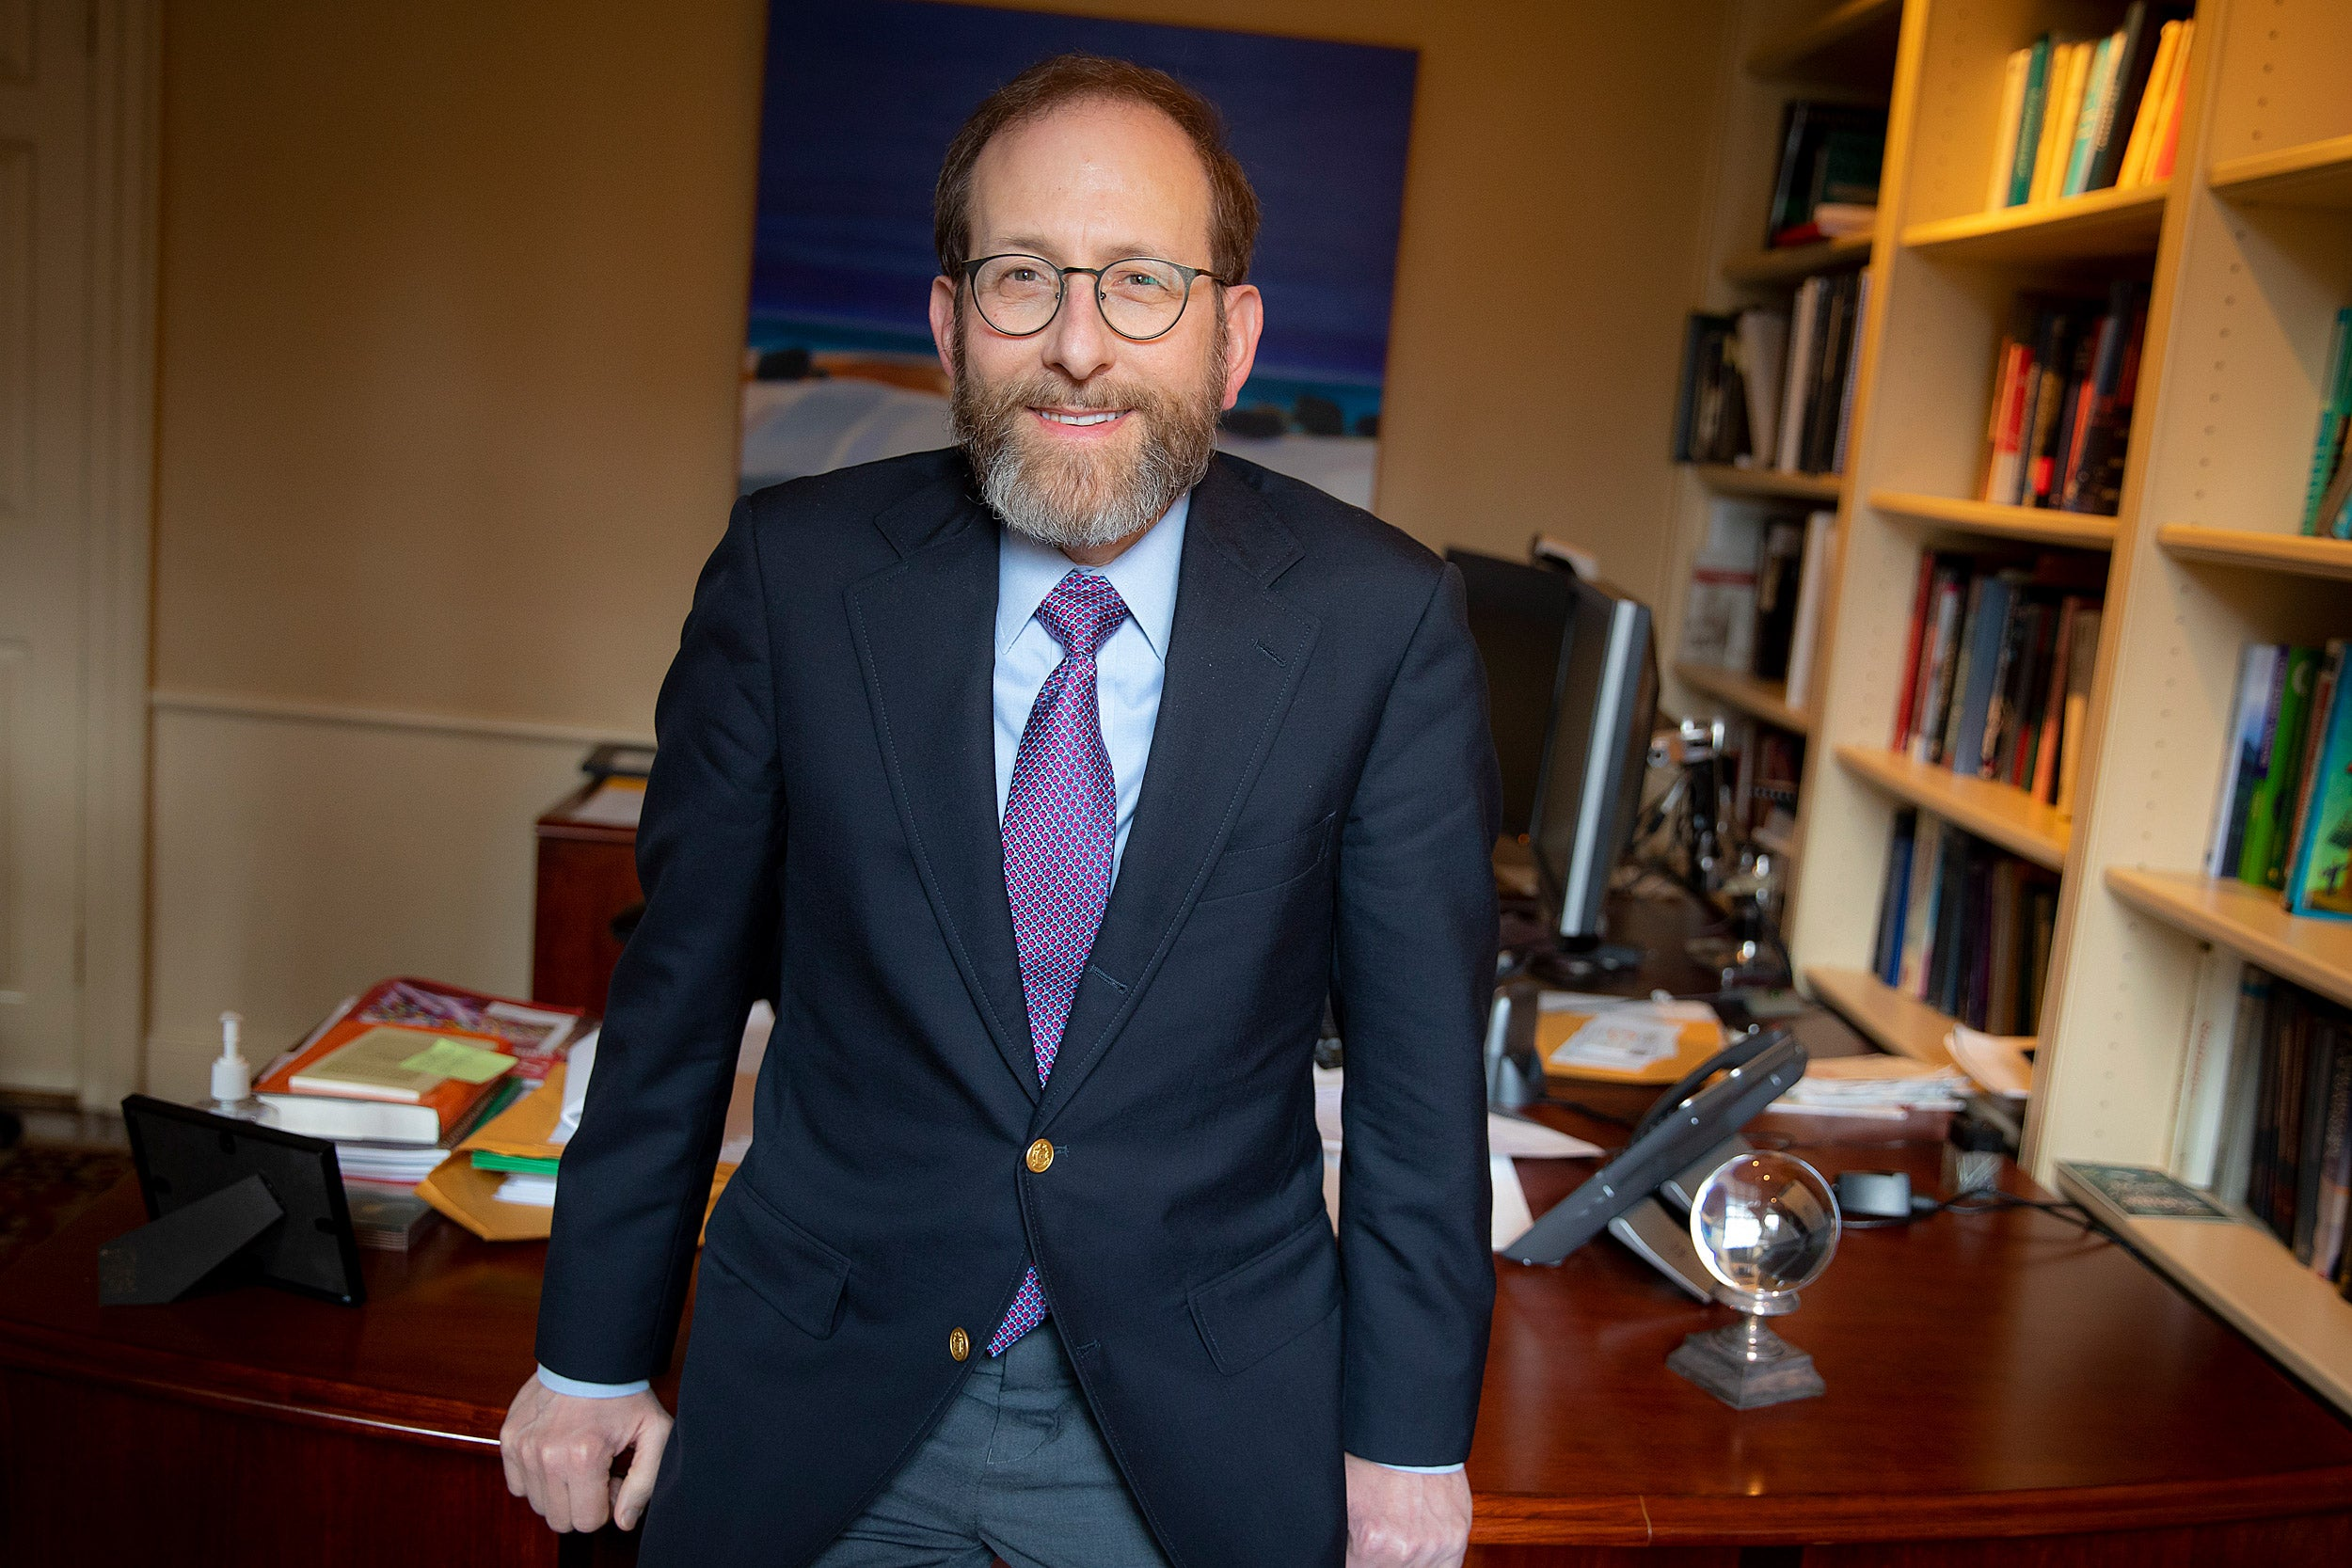 Harvard Provost Alan Garber talks to the Gazette about the recent symposium on neuroscience, science broadly at Harvard, and the growing interdependence among all scientific disciplines.